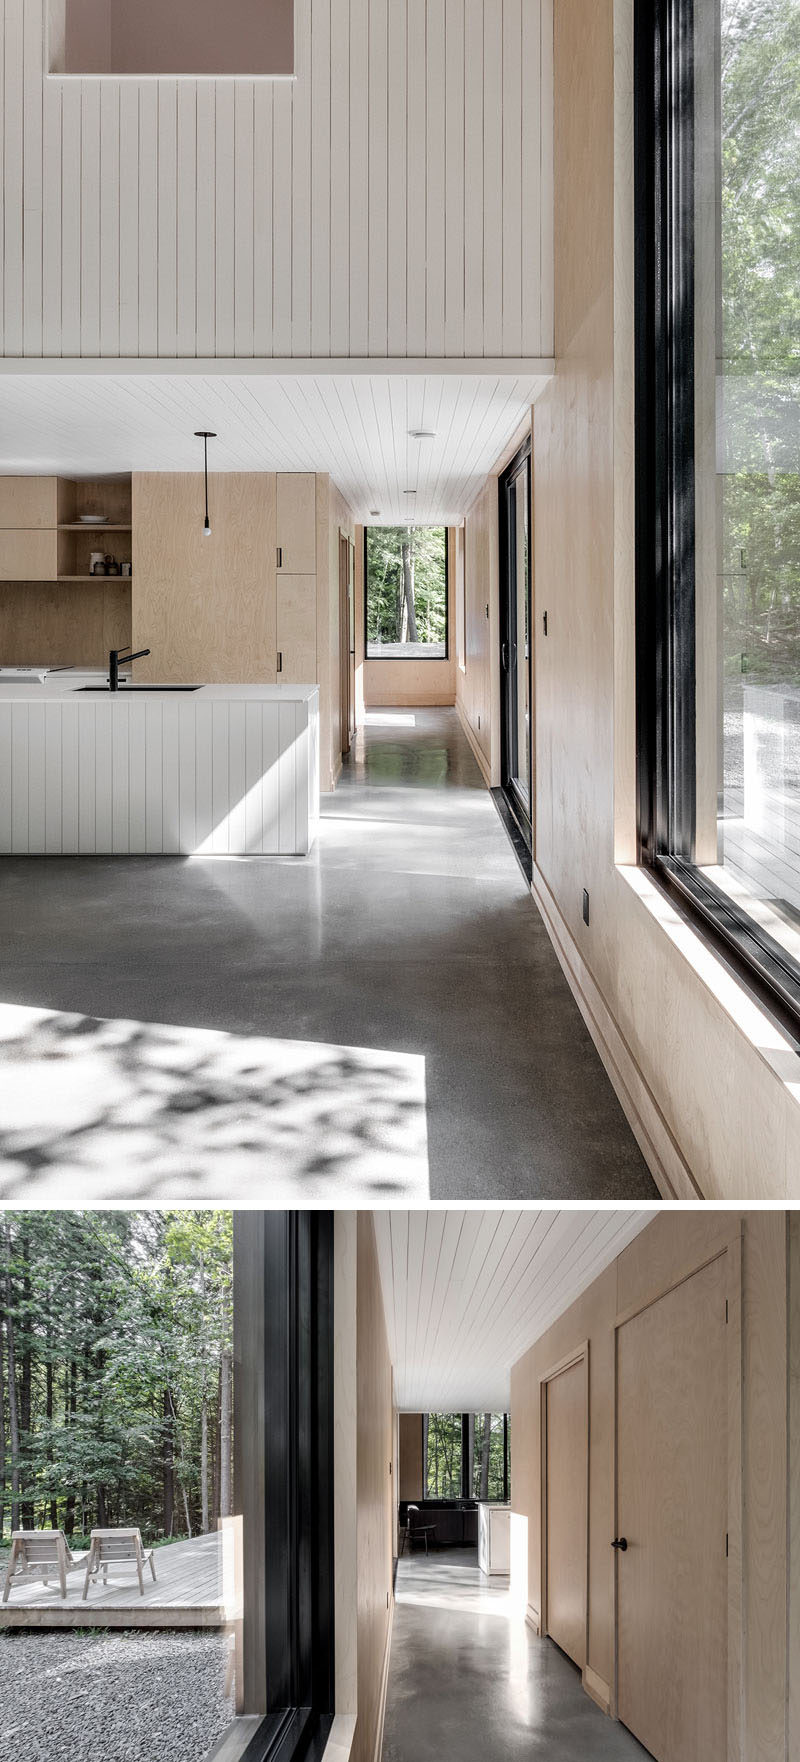 Polished concrete flooring, wood walls and a white accents have been combined to create a contemporary interior for this modern cottage. #ConcreteFlooring #WoodWalls